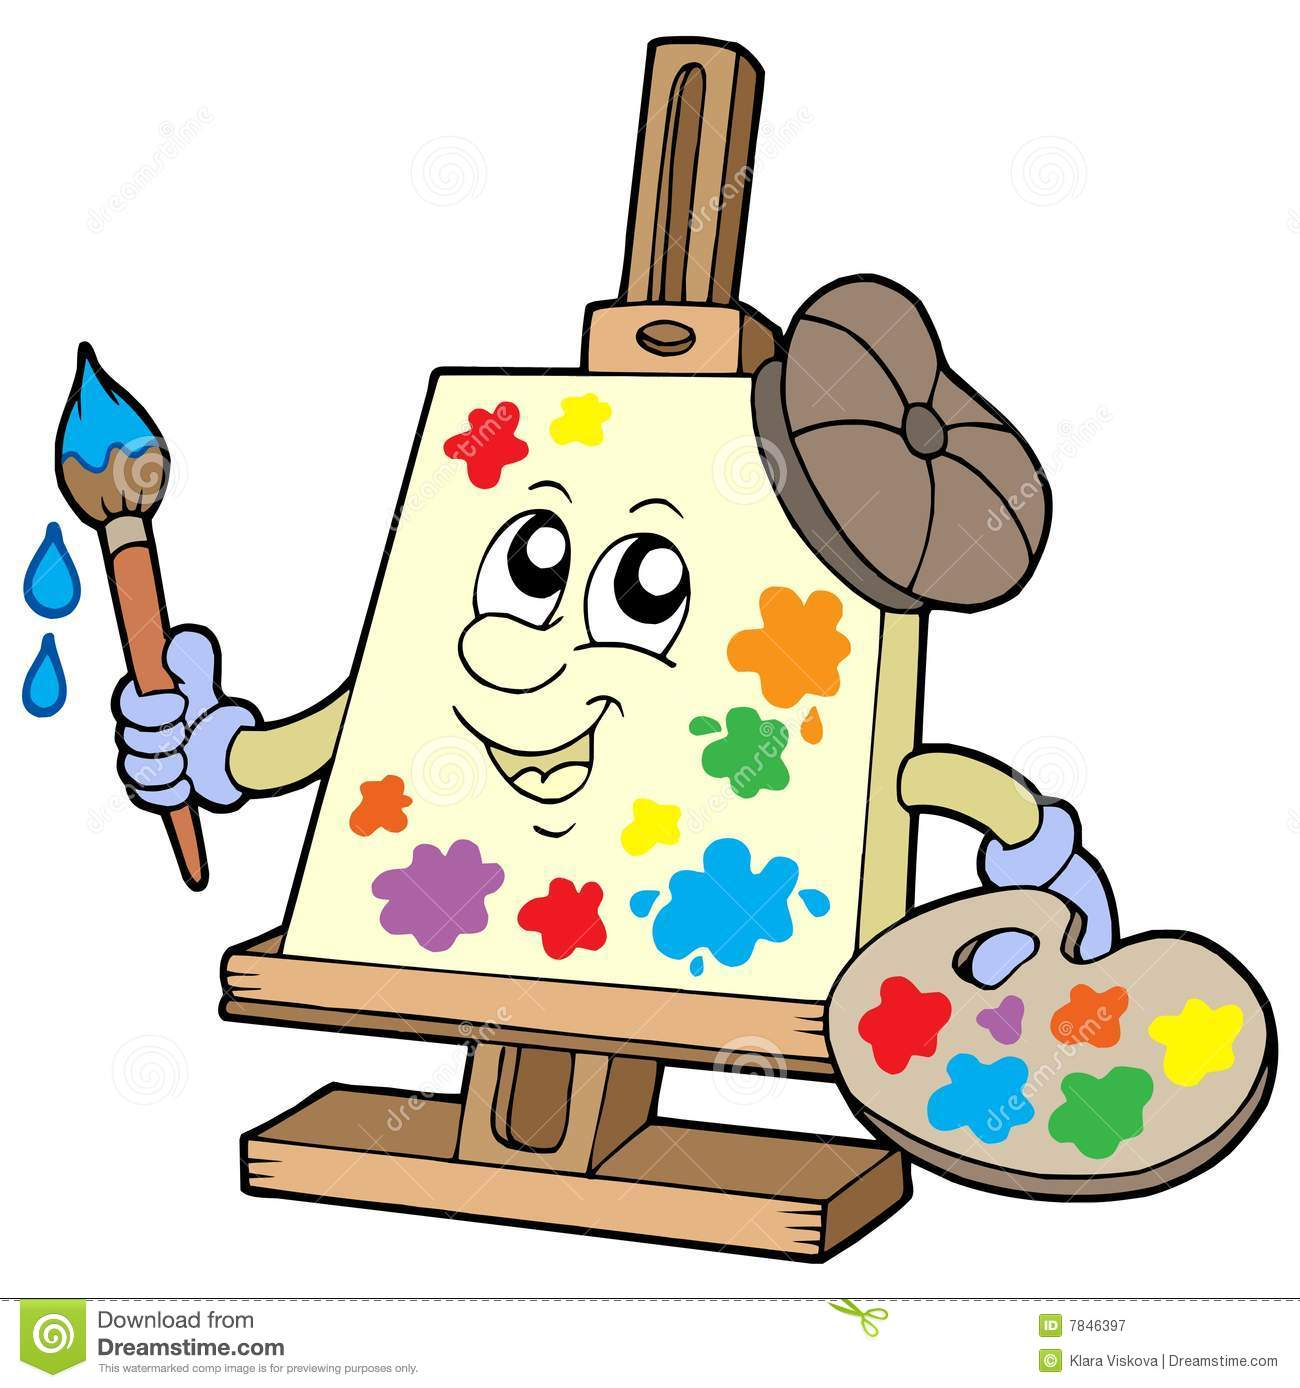 Cartoon canvas artist stock vector. Illustration of hobby.